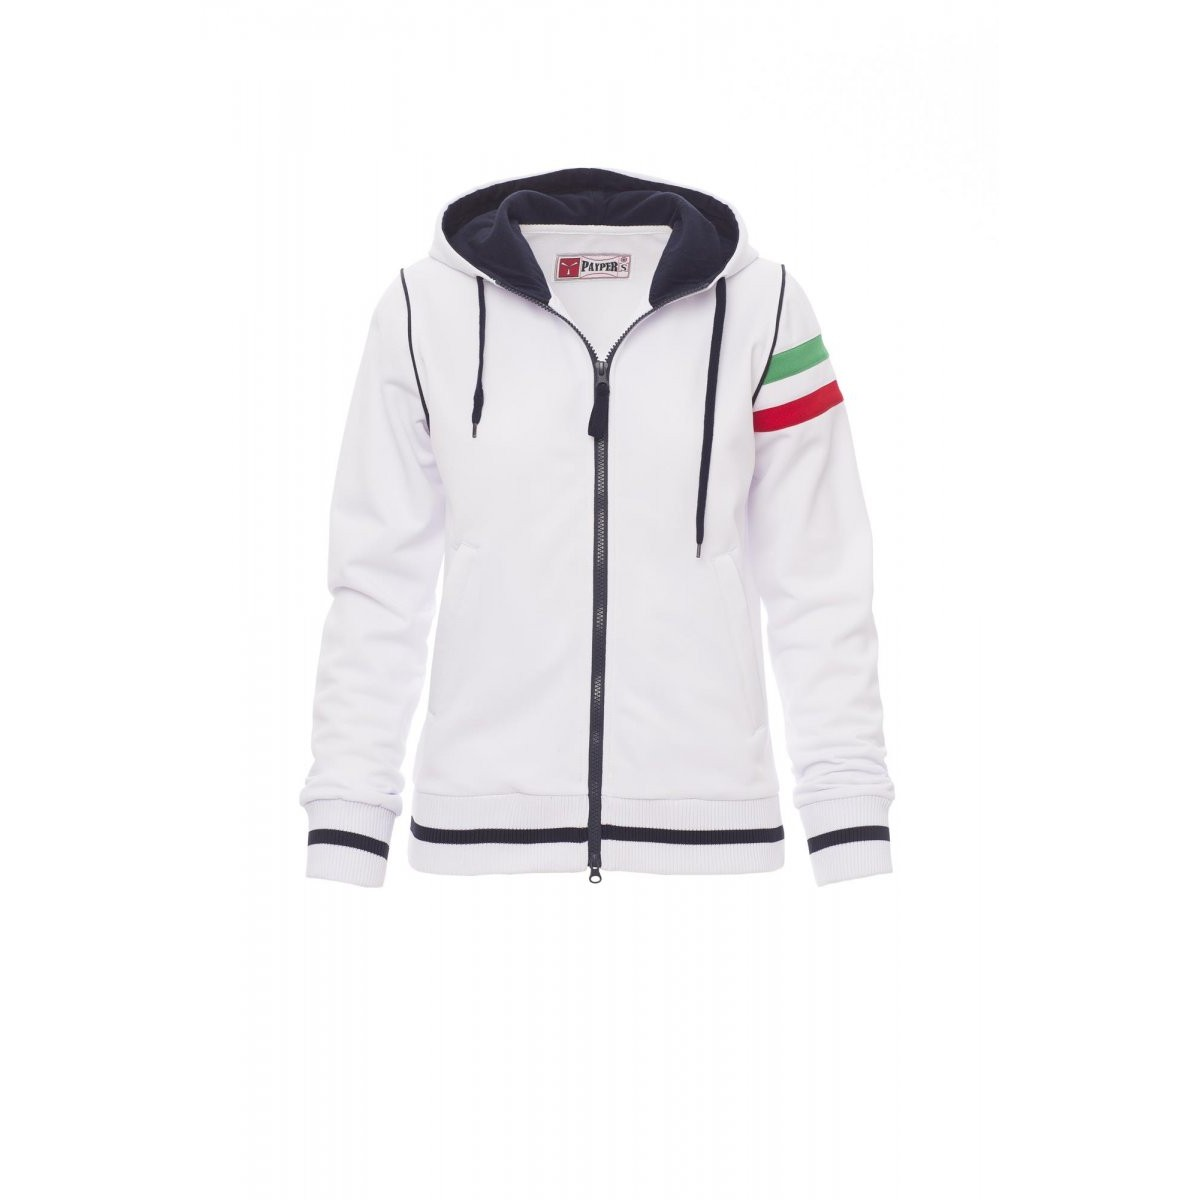 reputable site 2f822 fe670 Felpa kansas PAYPER donna tricolore giromanica full zip con ...